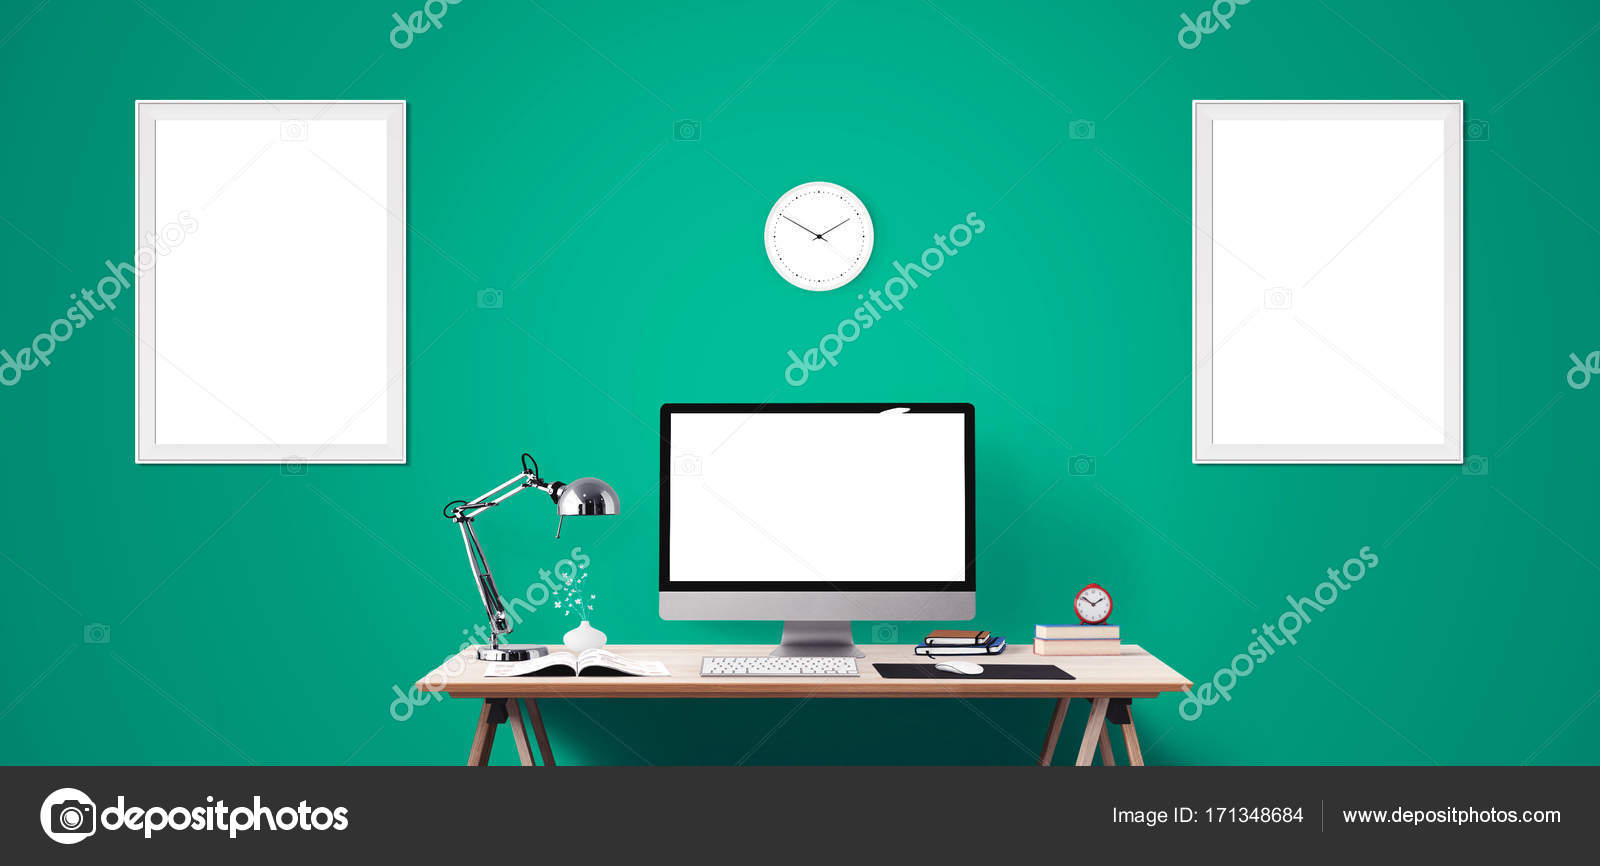 Computer Display And Office Tools On Desk Desktop Screen Isolated Modern Creative Workspace Background Front View